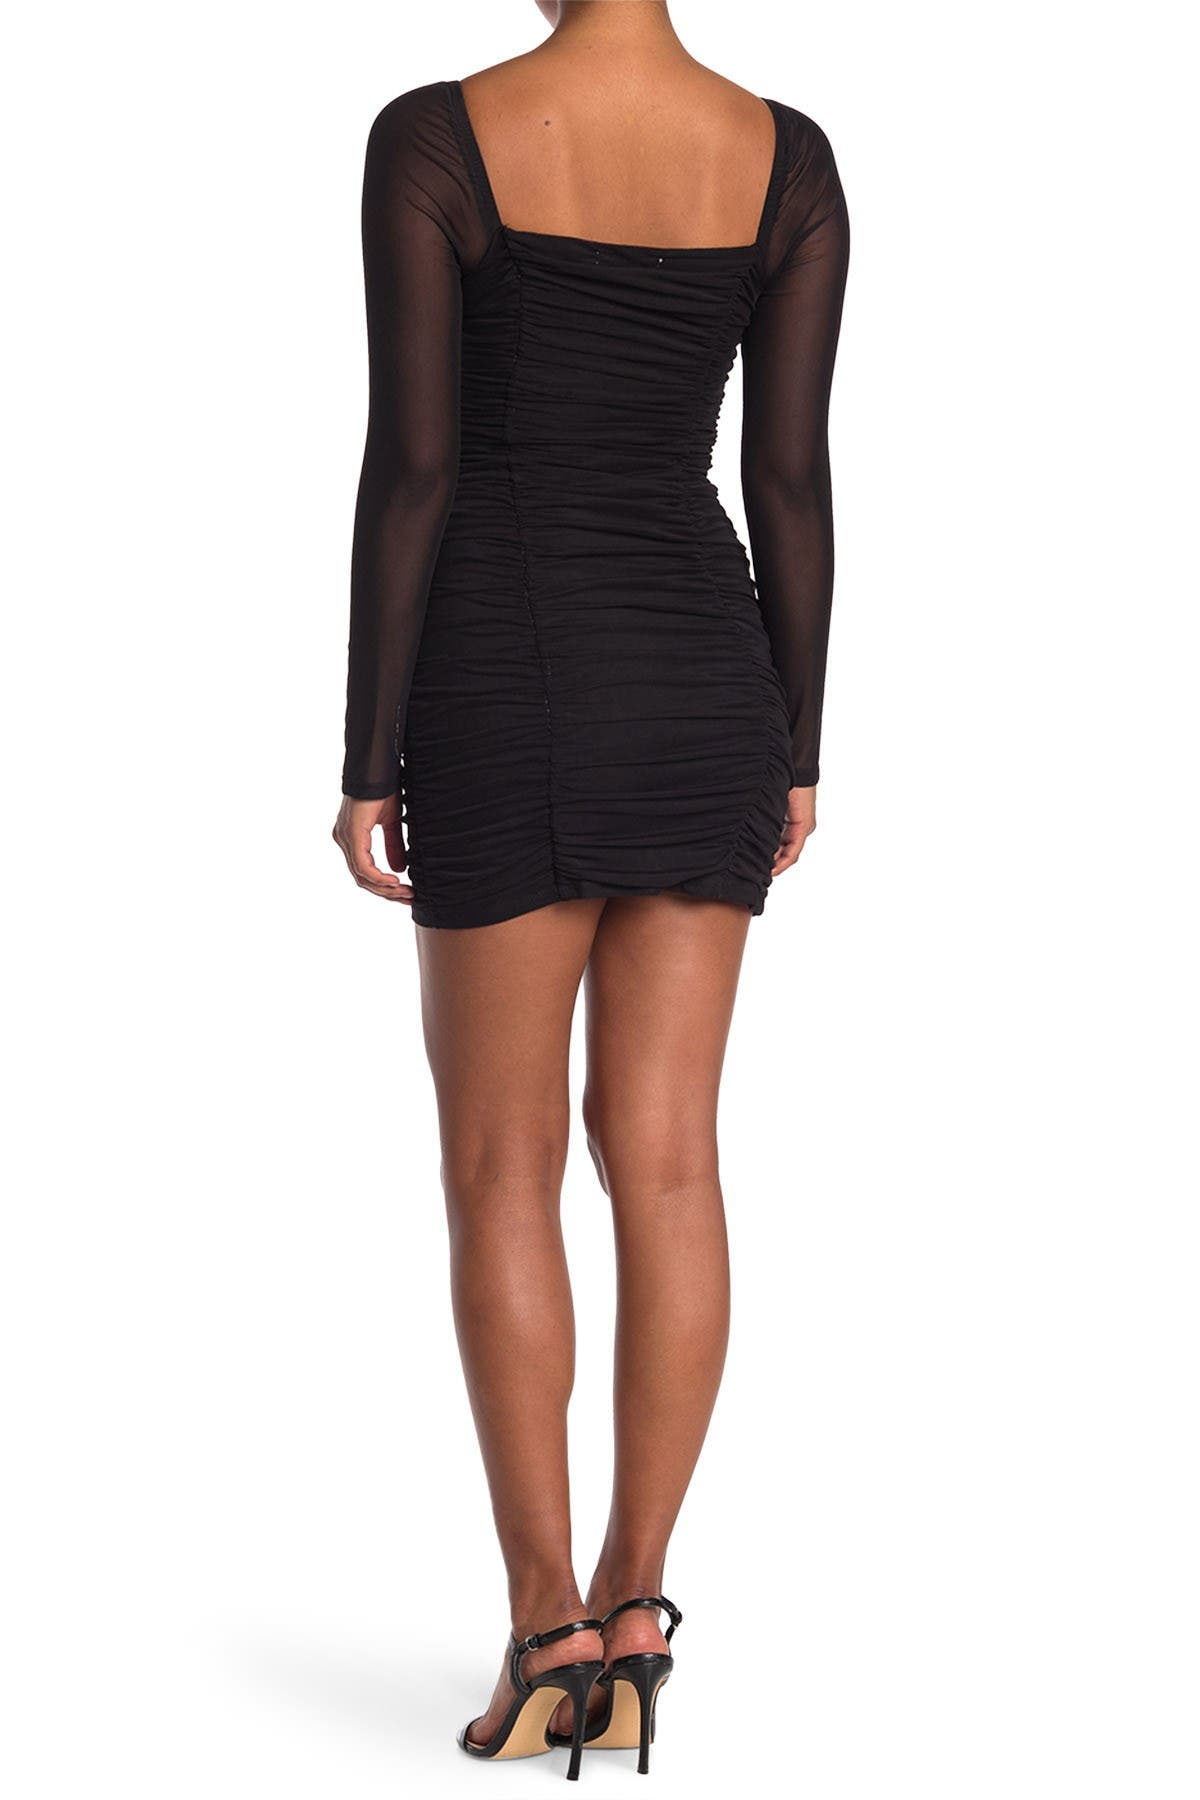 14TH PLACE Ruched Square Neck Mini Dress